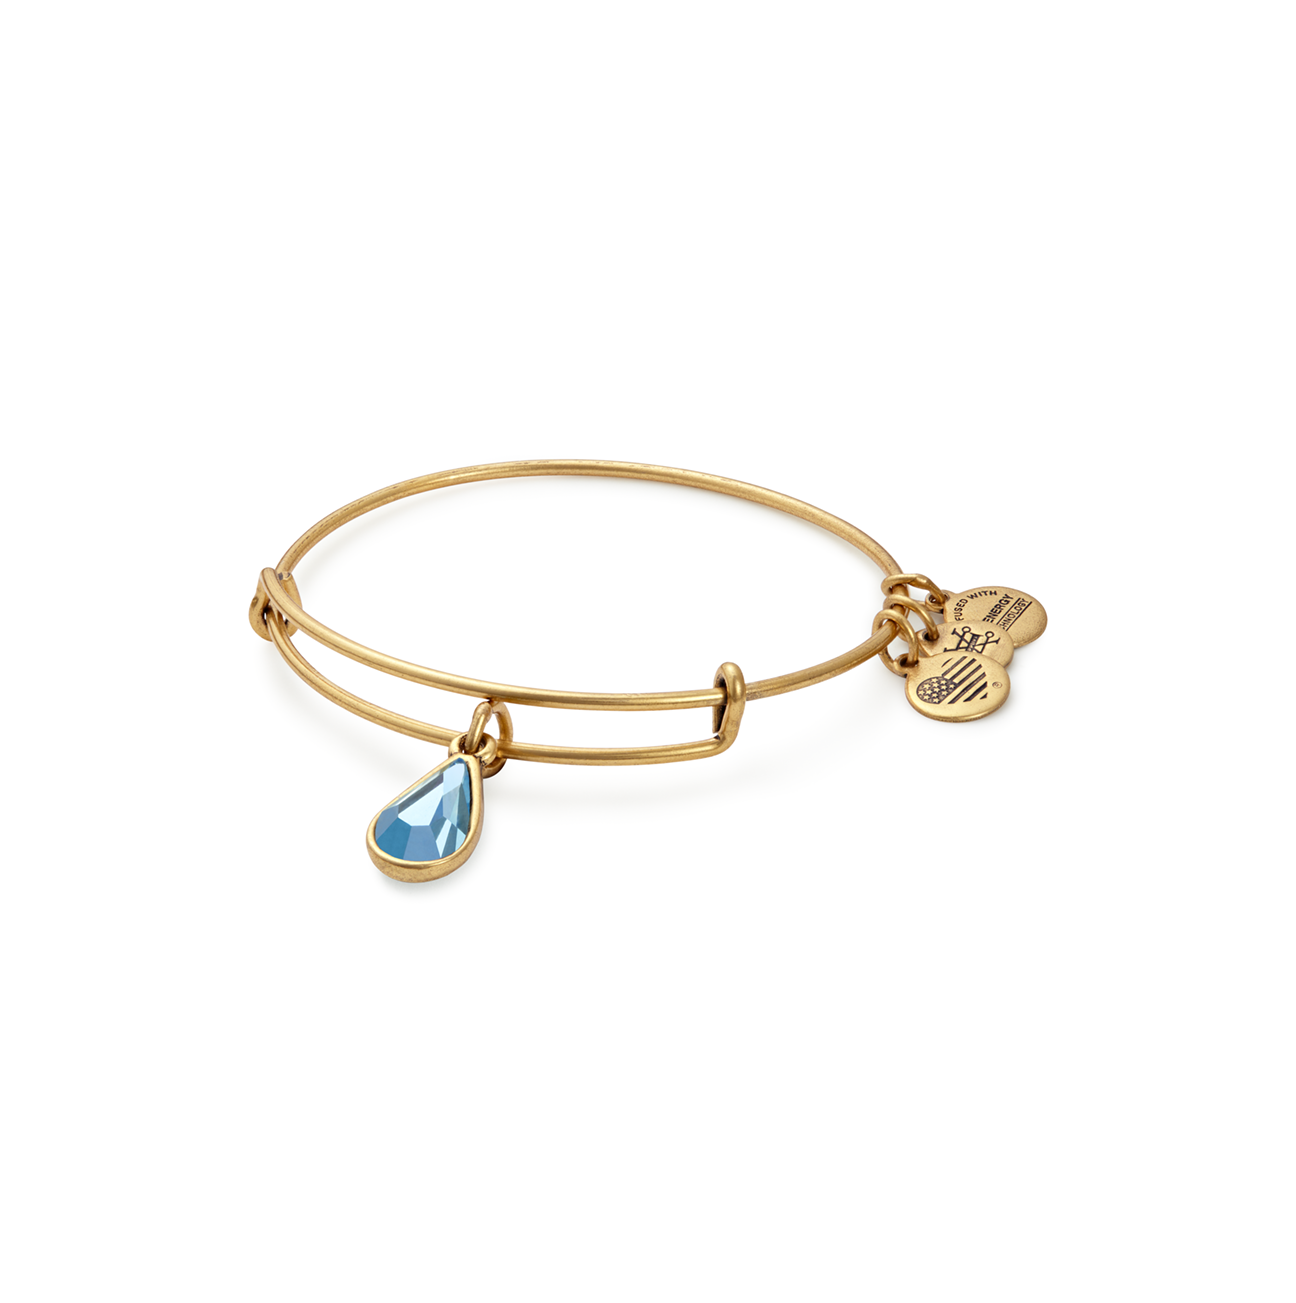 Alex and Ani Birth Month Charm Bangle